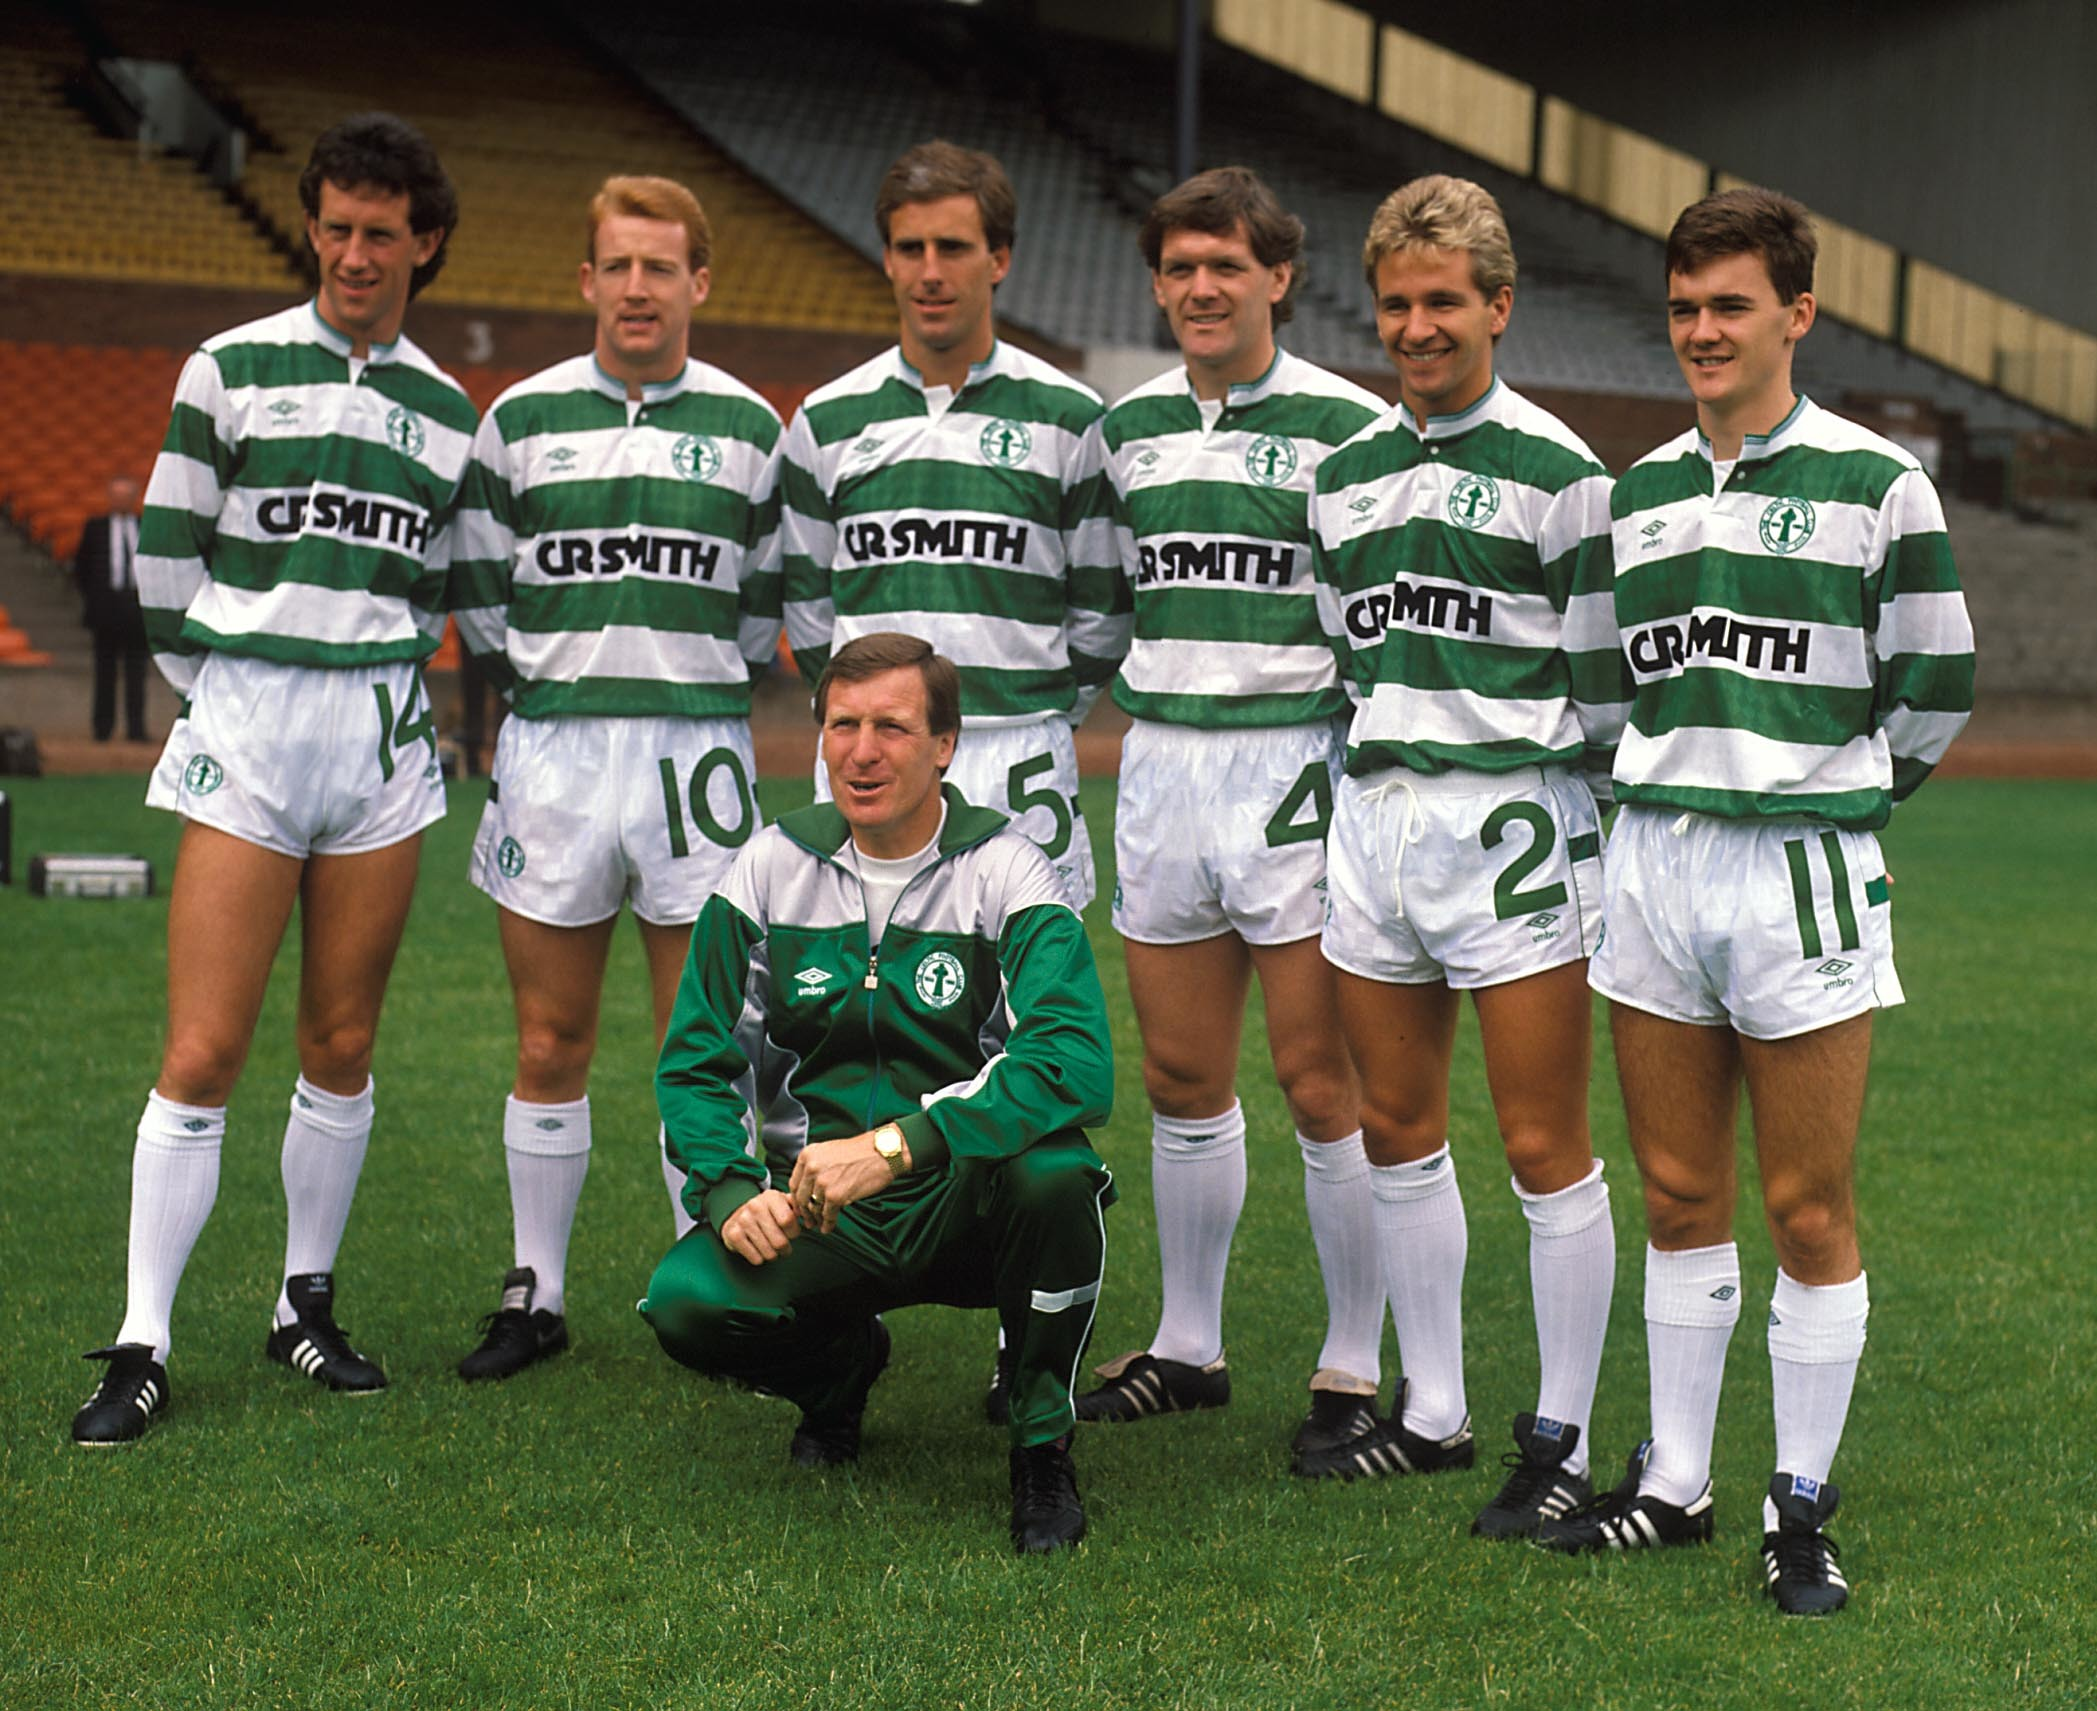 Celtic boss Billy McNeill parades some of his new signings for the 1987-88 season. Andy Walker is far right